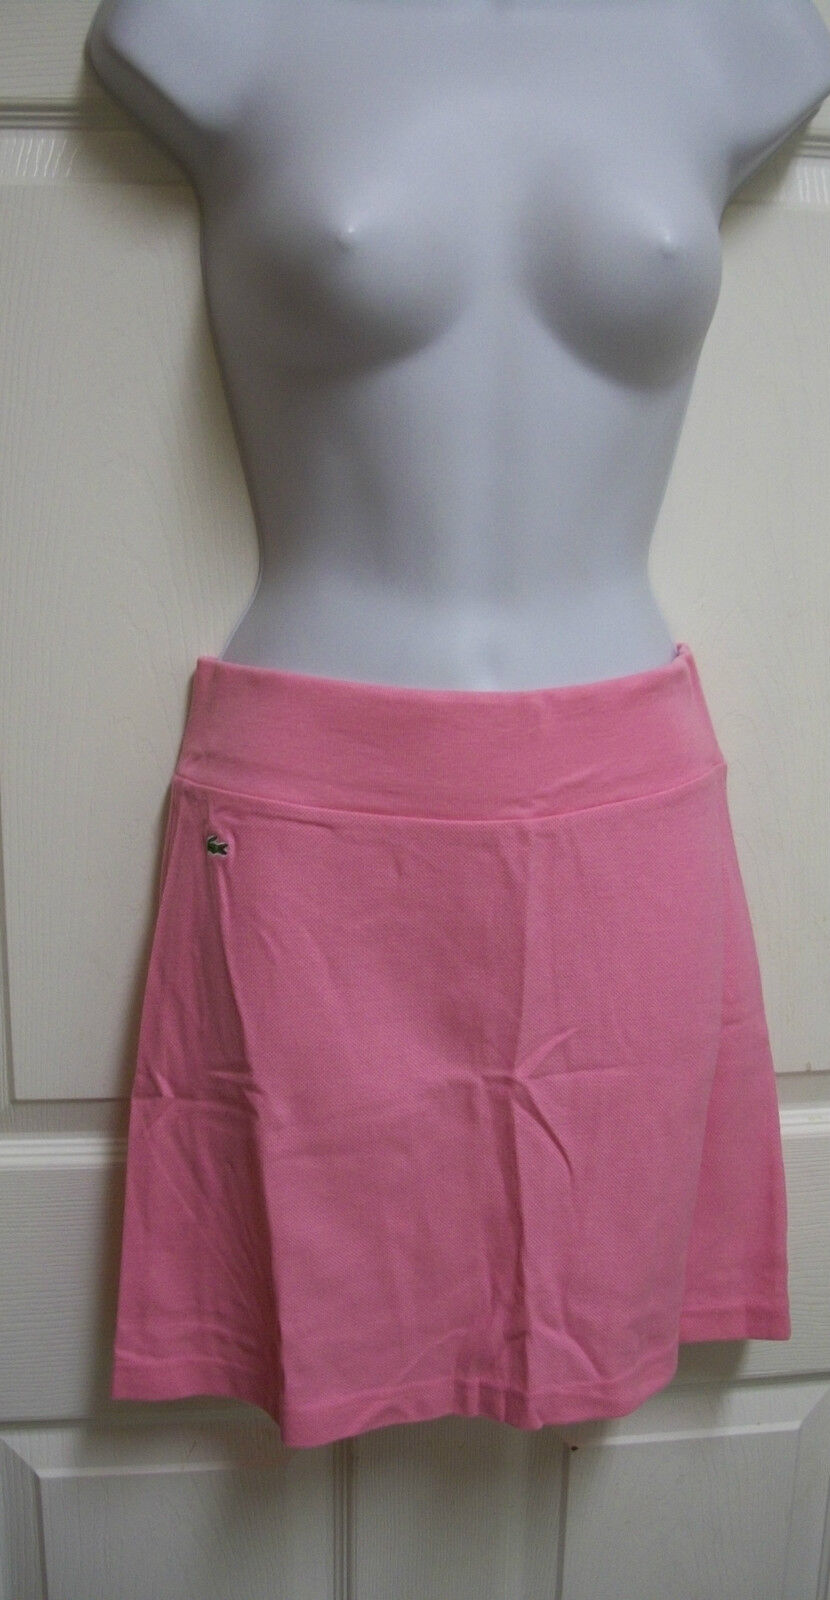 NEW LACOSTE PINK PIQUE KNIT SHORT ELASTIC ALLIGATOR LOGO WAIST MINI SKIRT 34 2